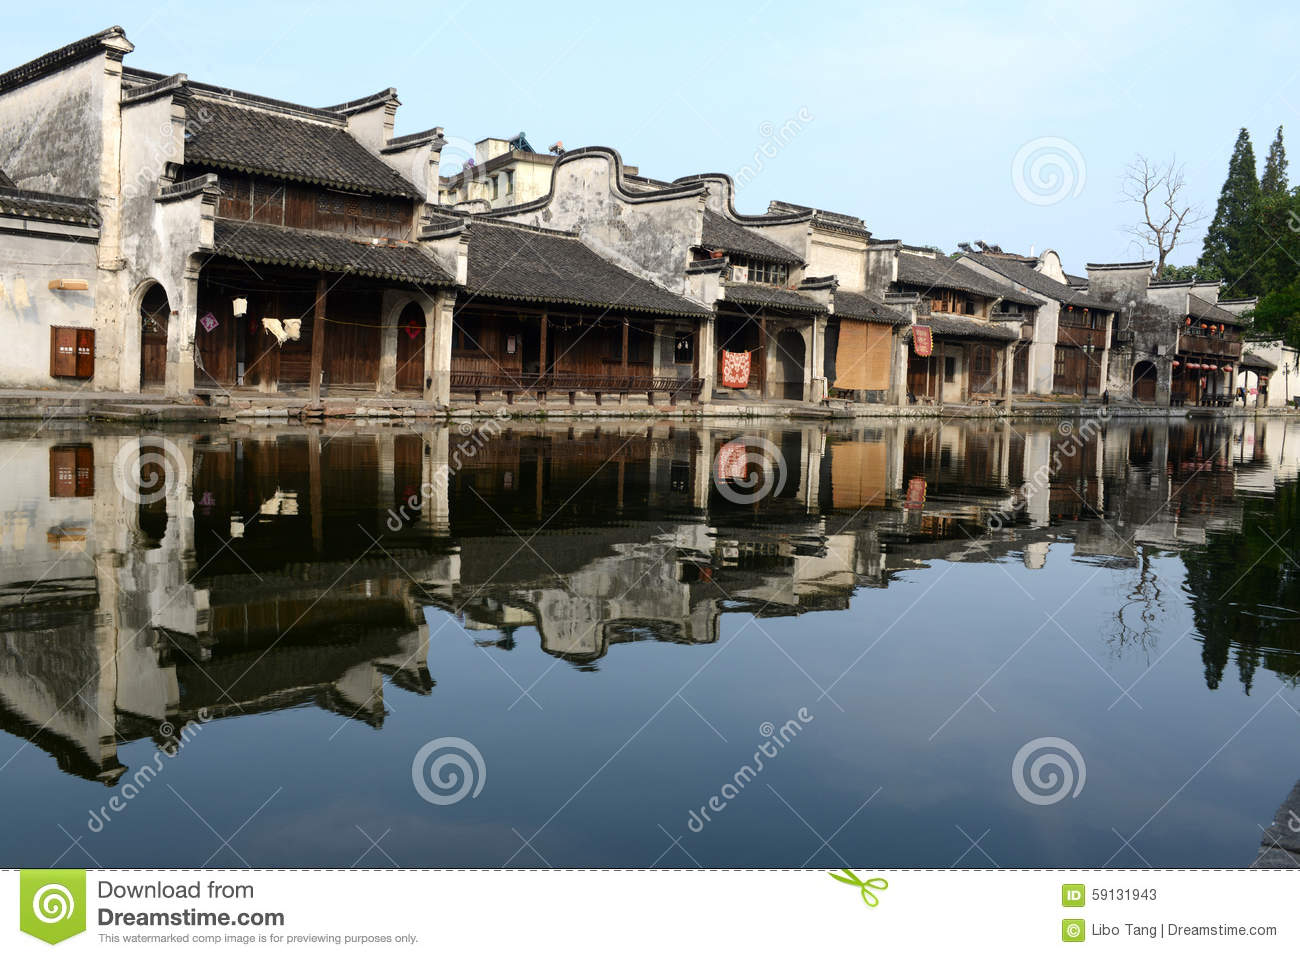 Scenery of Nanxun ancient town